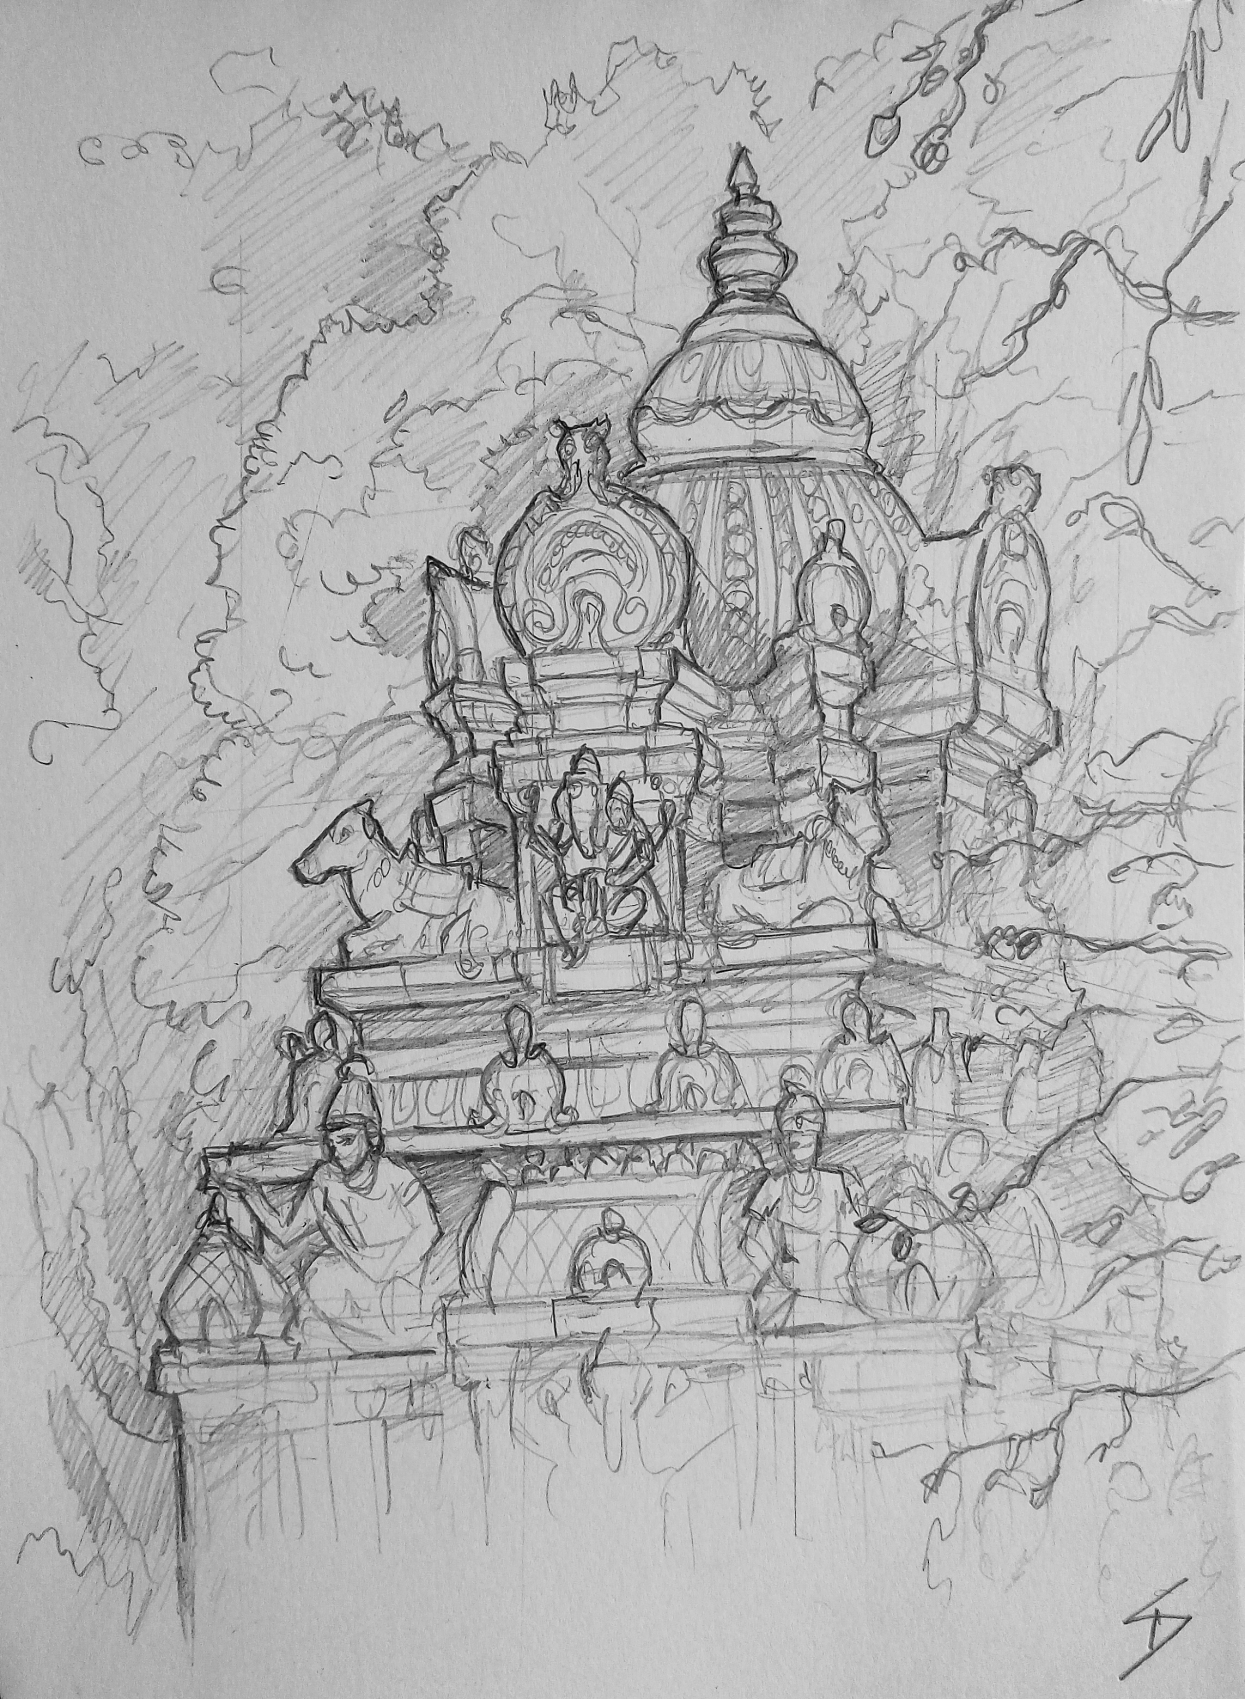 Urban art – Bull Temple Road, Basavanagudi, Bengaluru, Karnataka, India. 'Dodda Ganesha Temple.' The elephant-headed god Ganesh is, amongst other things, considered a deity patron of the arts and learning. Ganesh is also connected with new beginnings, and is often invoked before religious ceremonies and even artistic events. sketchbookexplorer.com @davidasutton @sketchbookexplorer Facebook.com/davidanthonysutton #sketch #drawing #art #bangaluru #karnataka #temple #hindutemple #bulltemplebengaluru #hindu #travel #travelblog #india